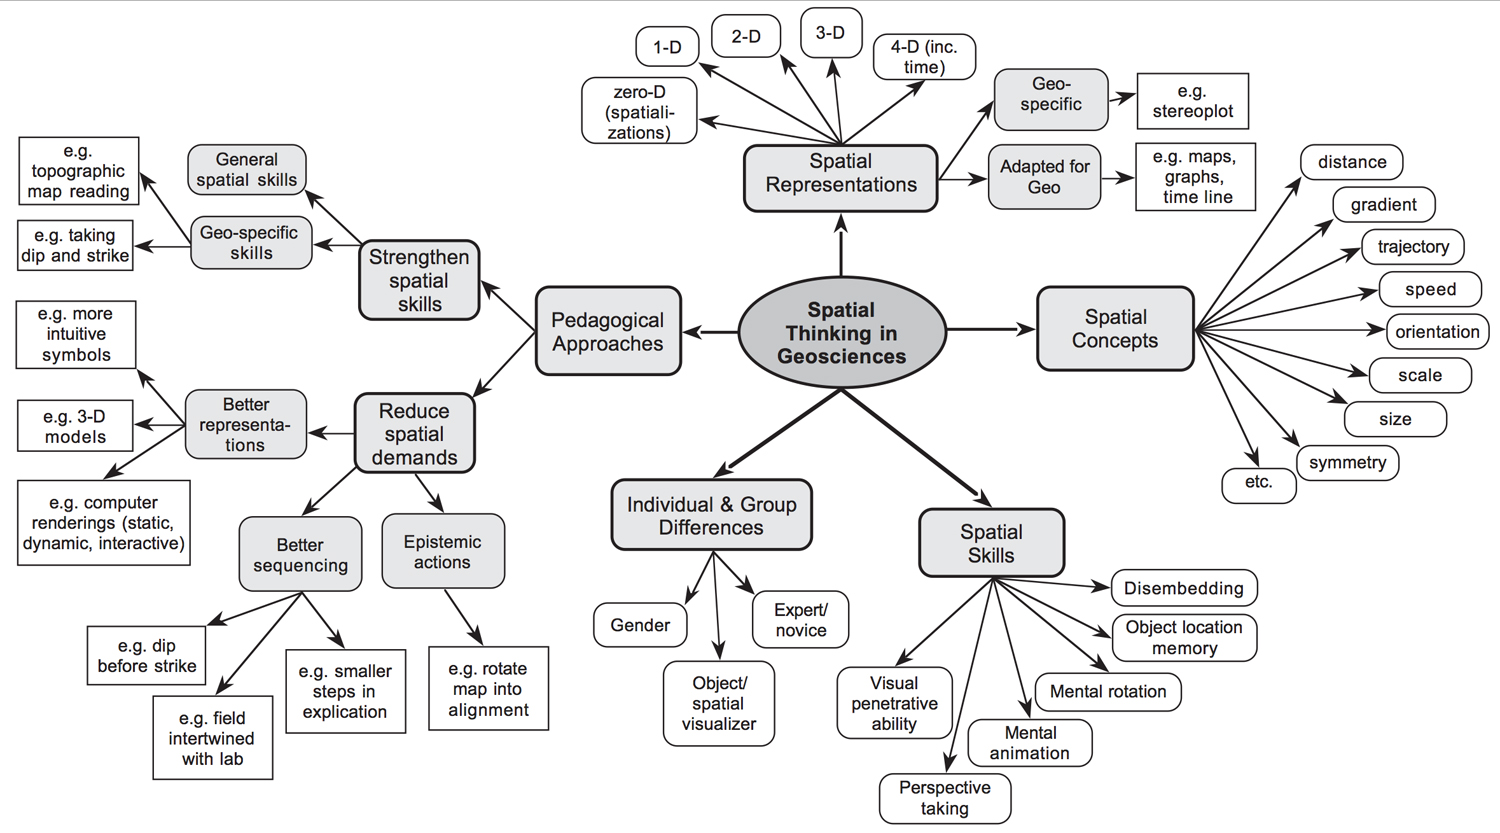 Spatial Thinking Concept Map